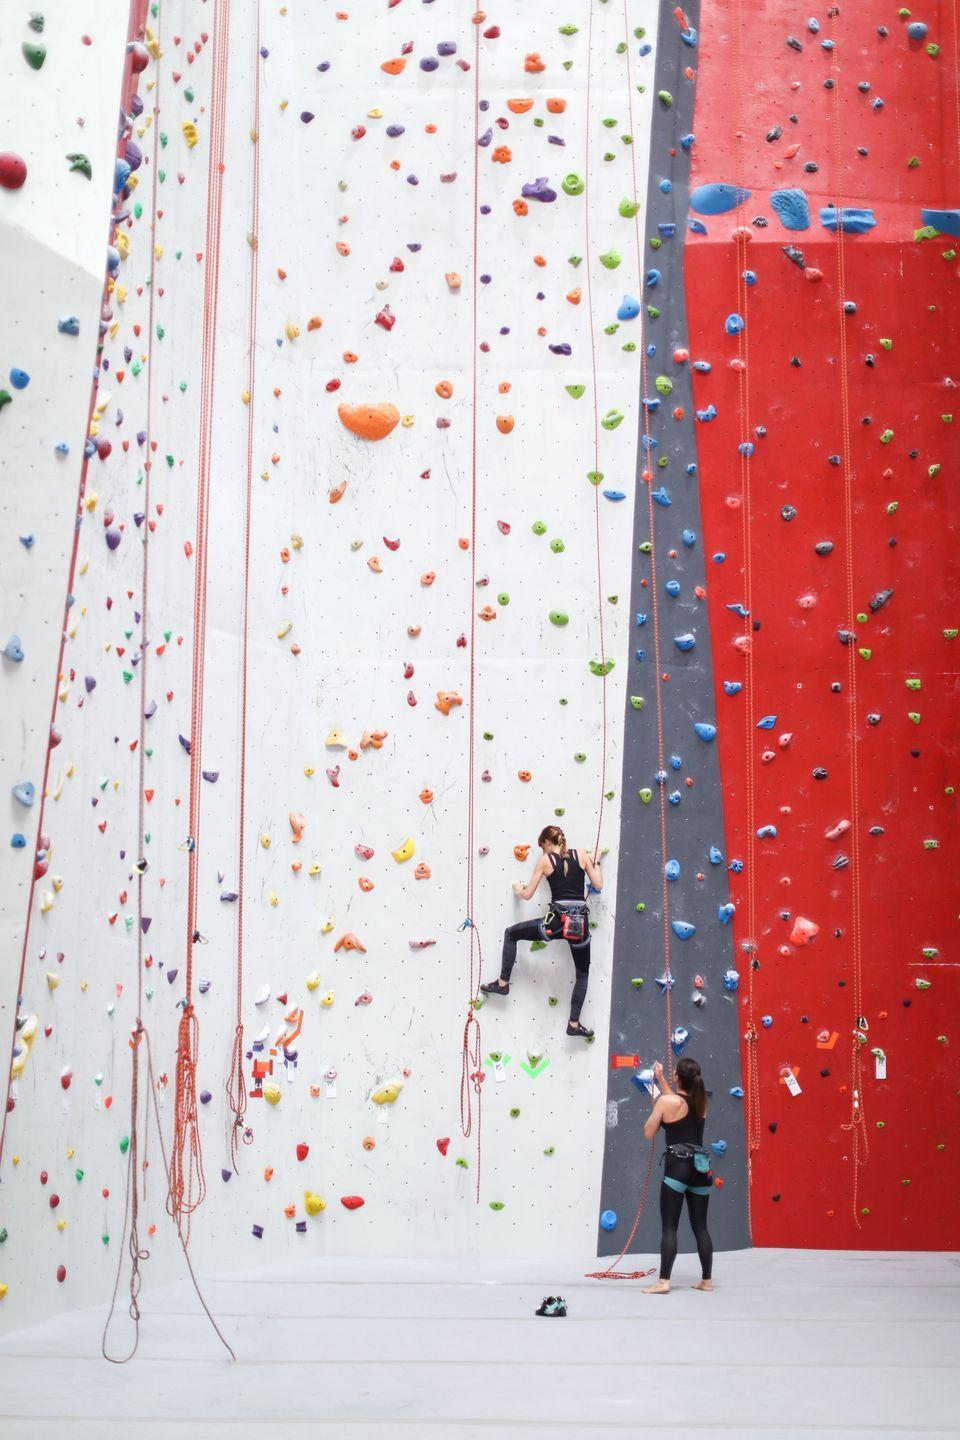 <p>Get an adrenaline rush by hitting a nearby indoor rock climbing gym. If you're already experienced or if you're just up for the challenge, you can try your hand at bouldering, which is free climbing.</p>